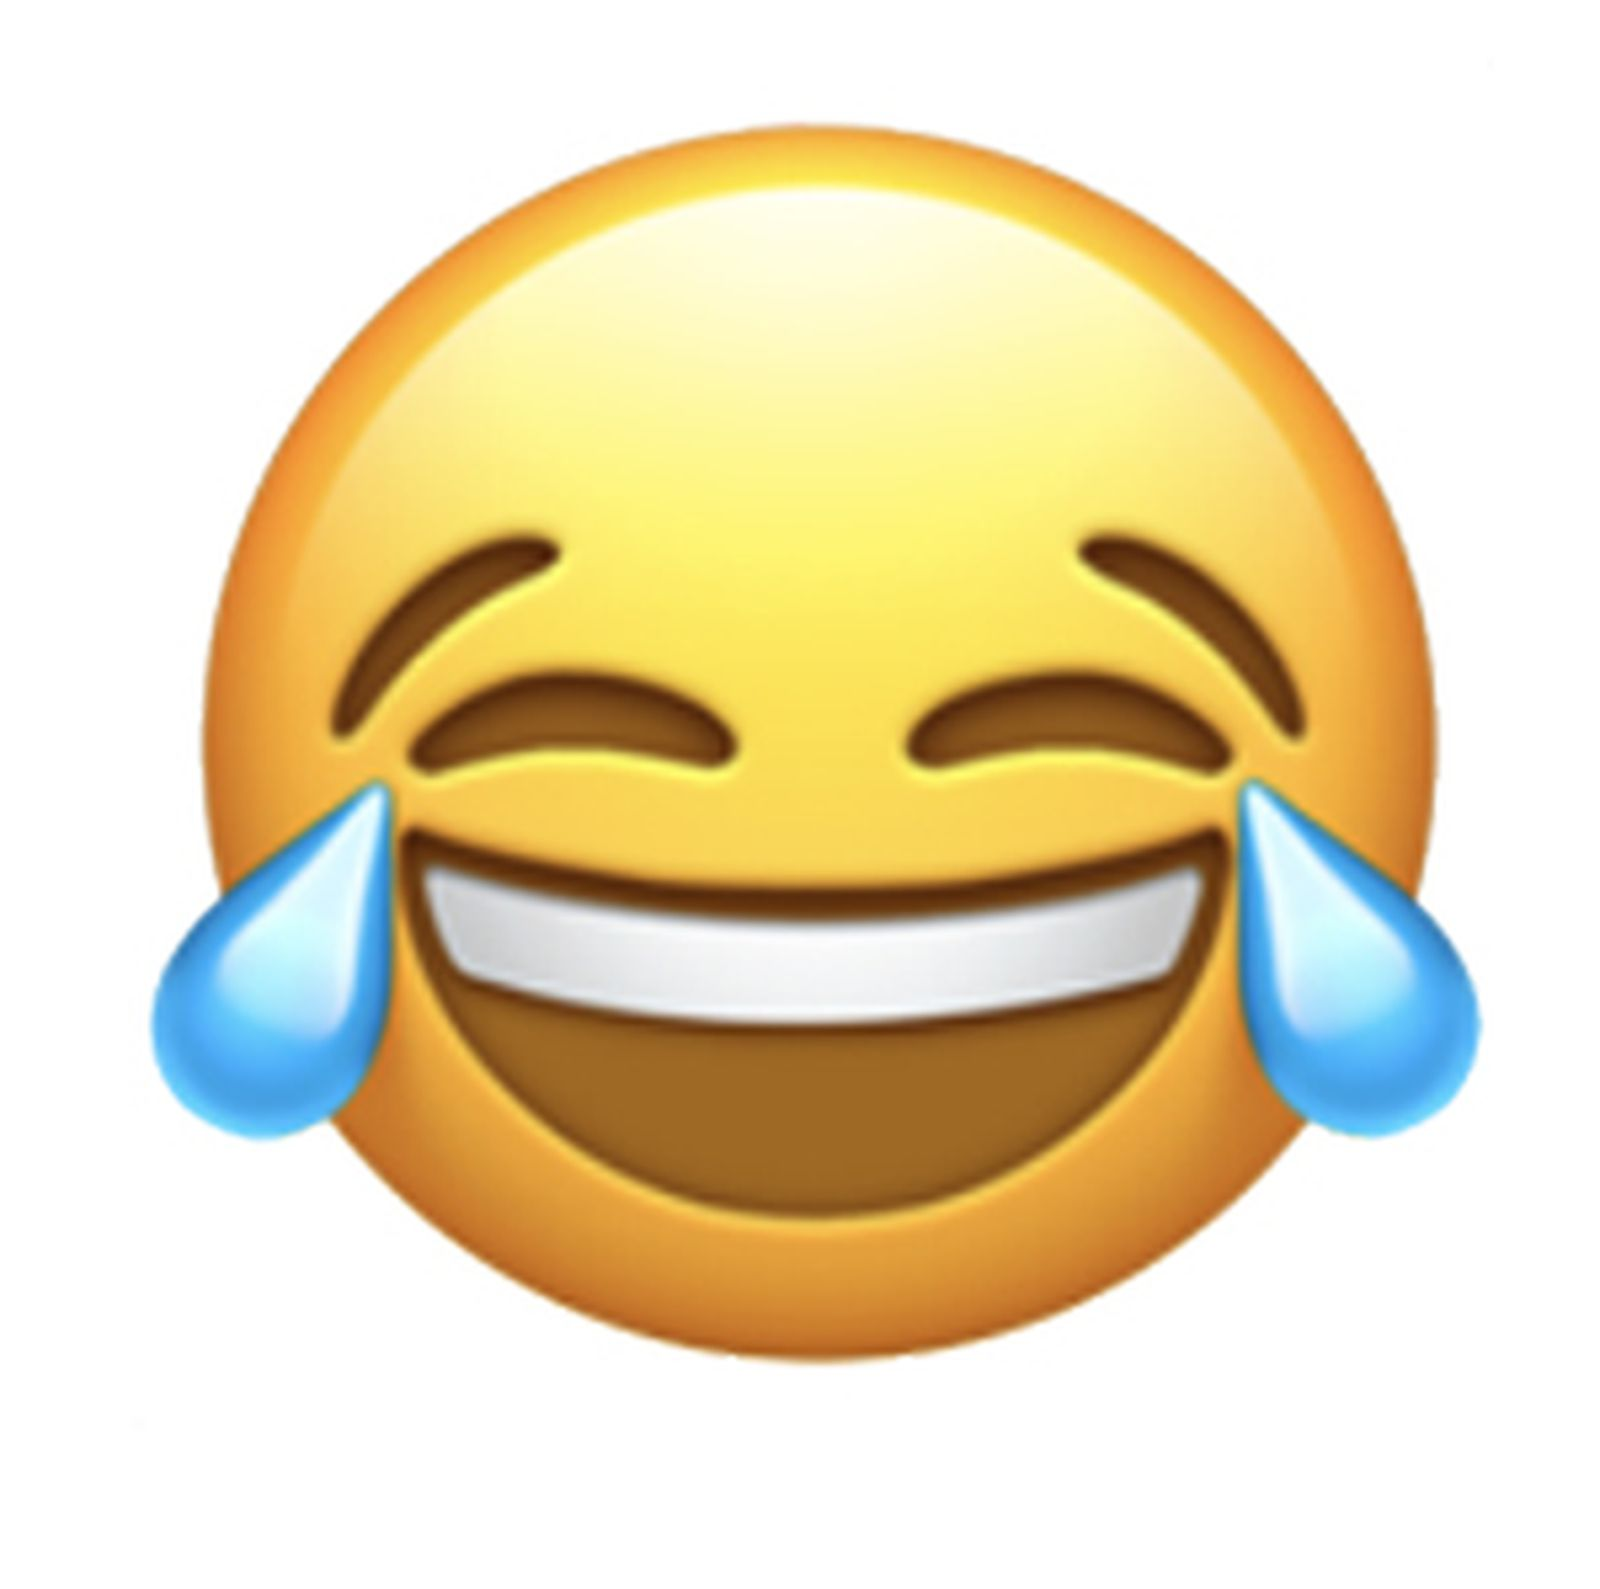 Apple Says 'Face With Tears of Joy' is Most Popular Emoji in United States  Among English Speakers - MacRumors